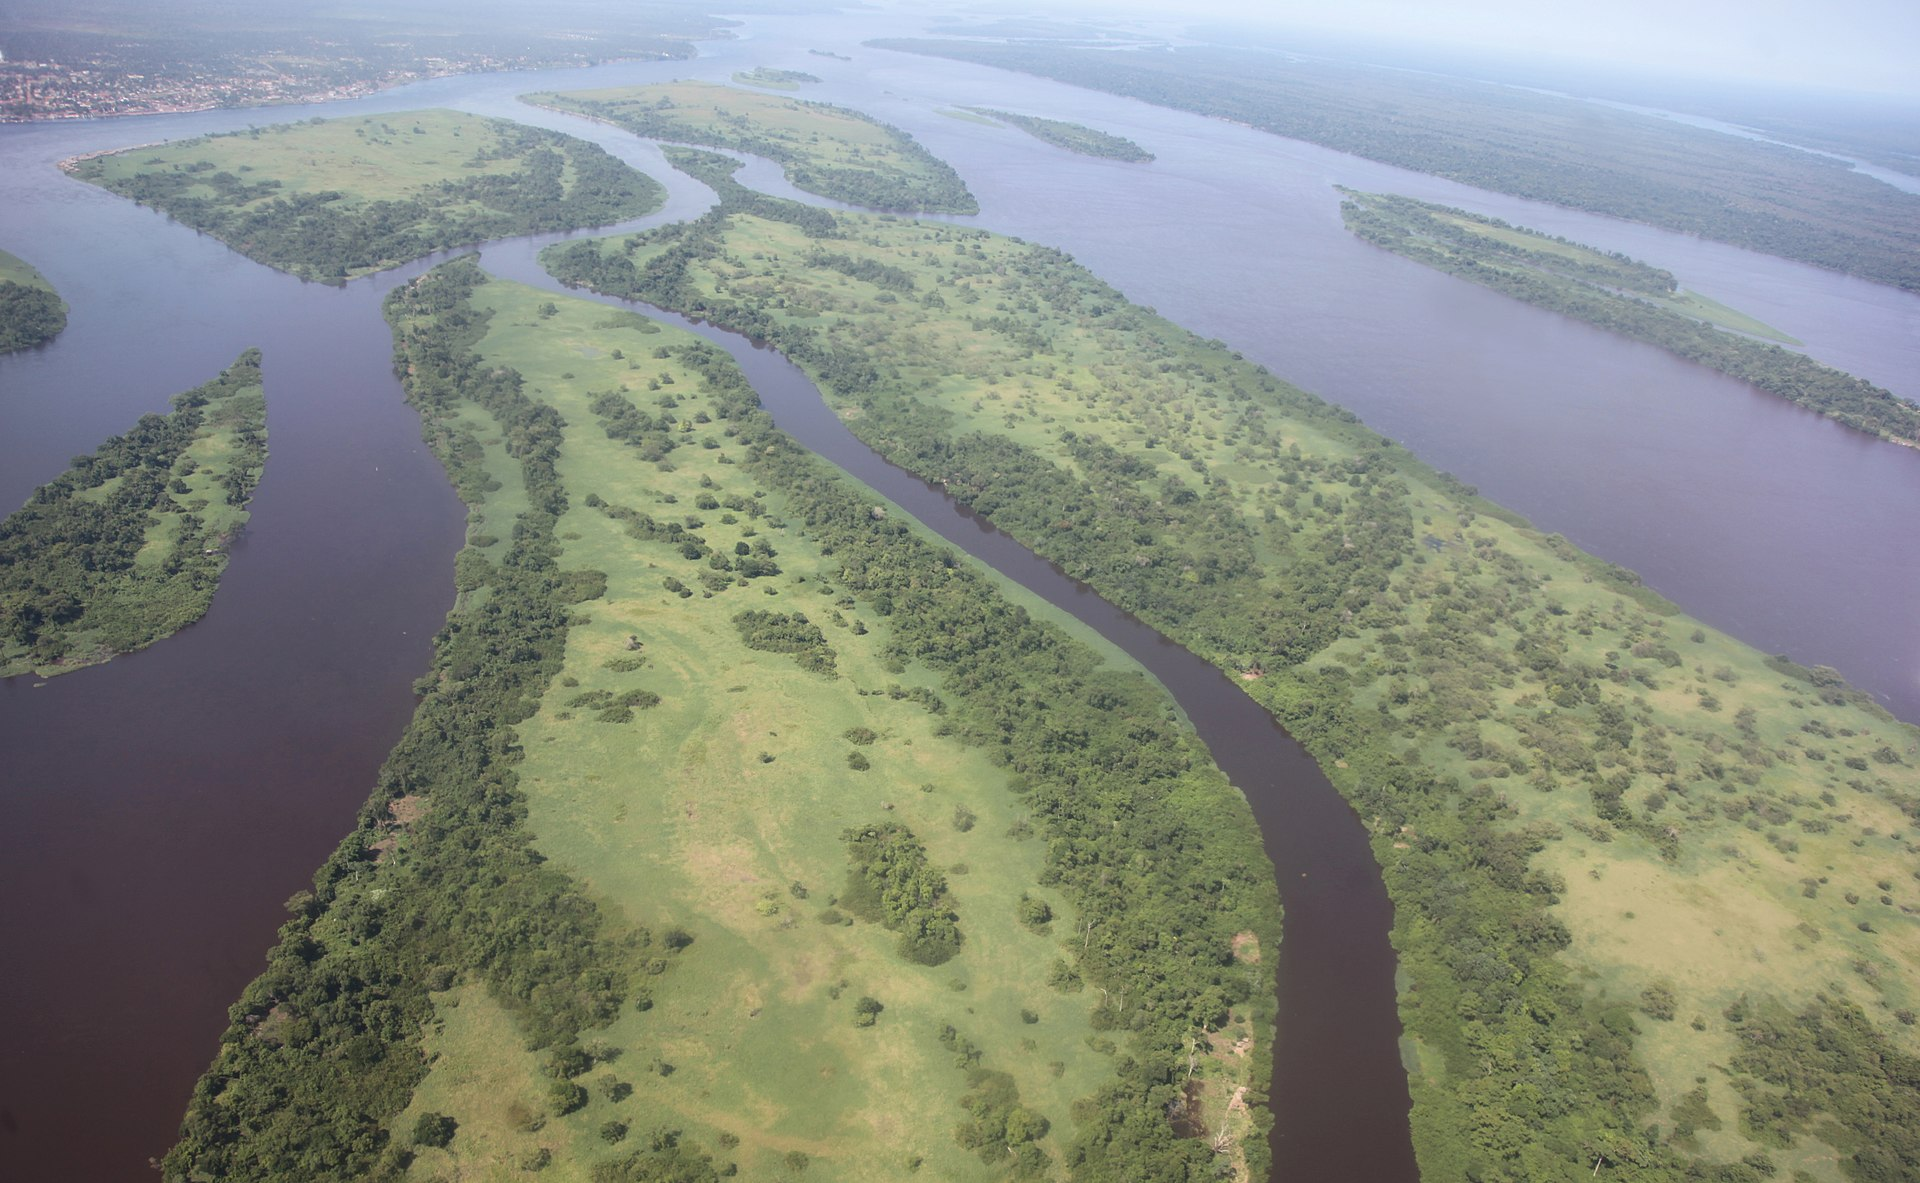 Length of the Congo River